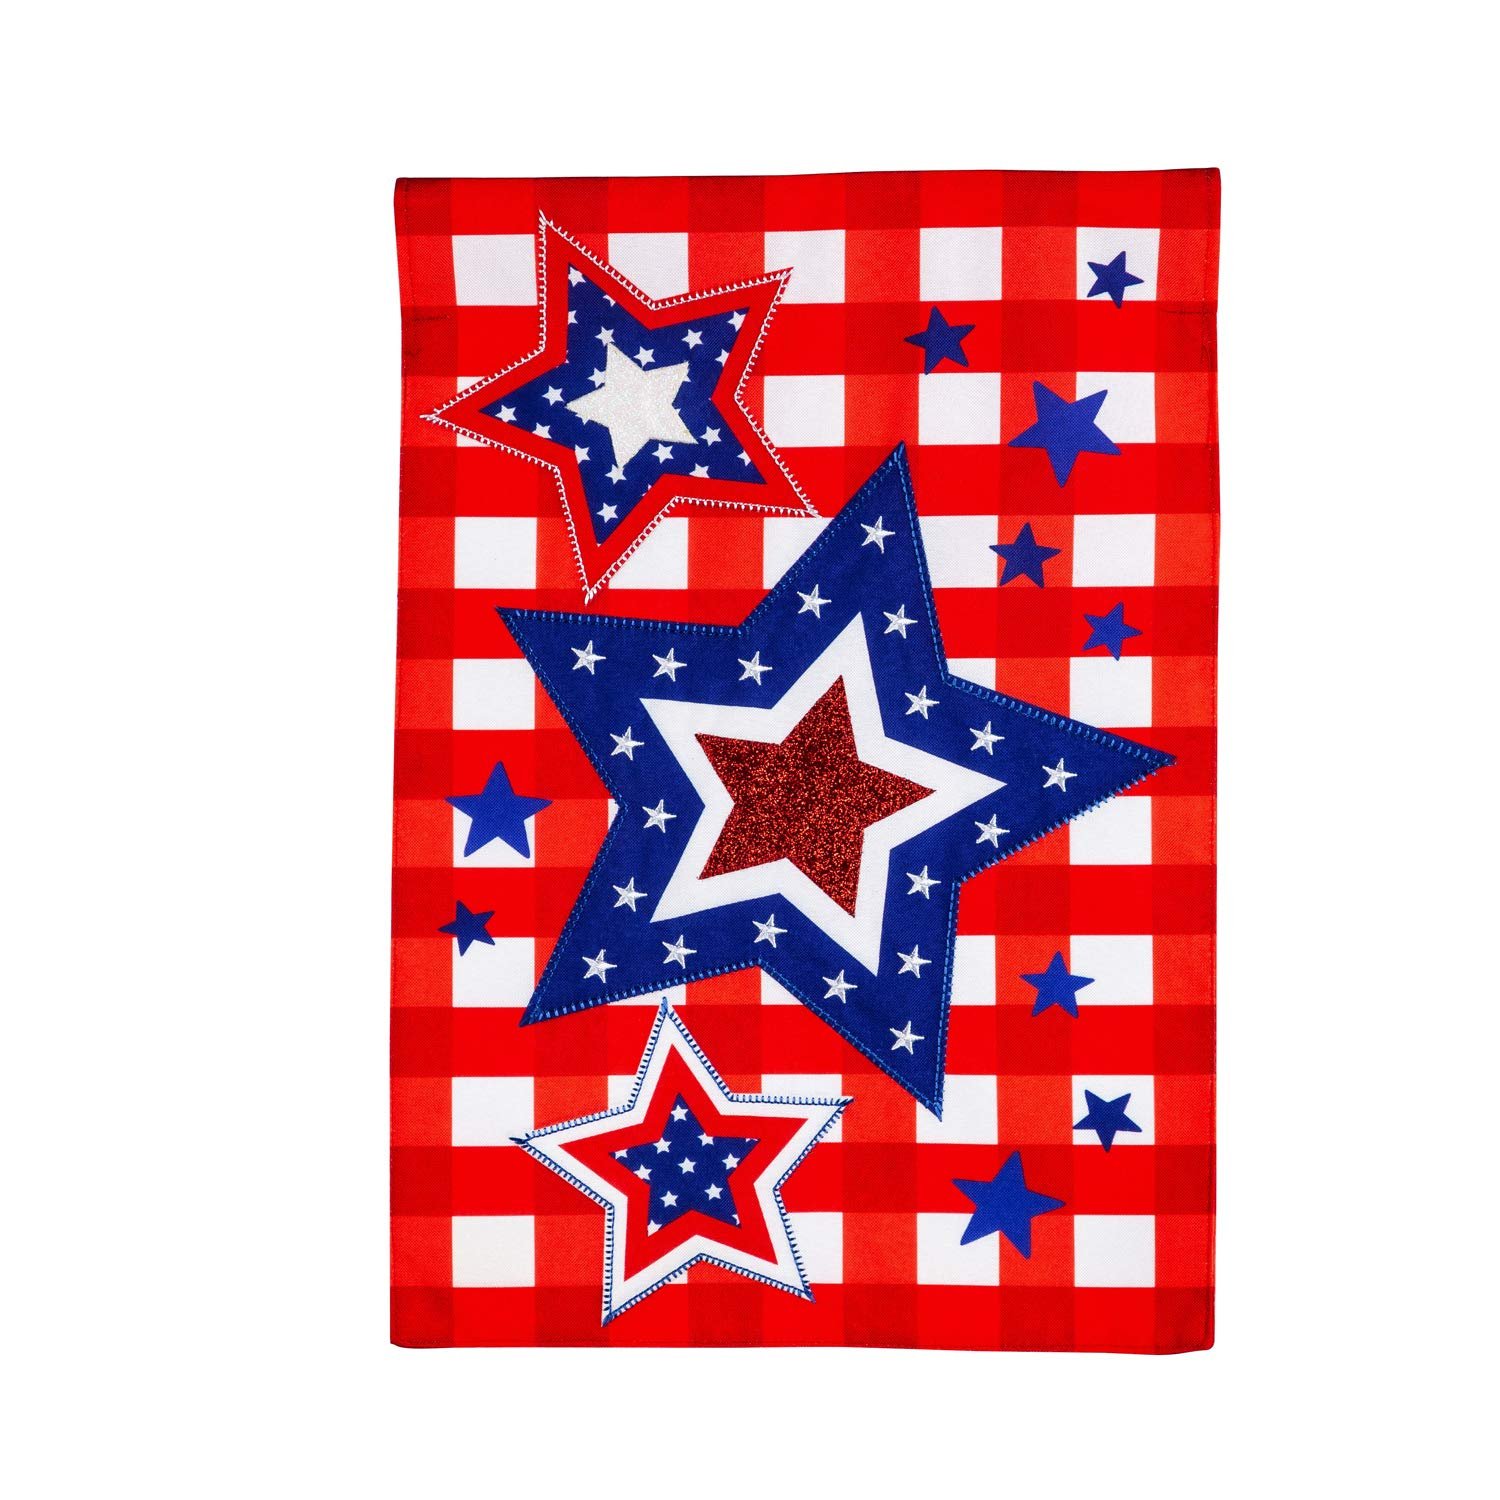 Evergreen Flag Beautiful Patriotic Star Trio Linen Garden Flag - 13 x 1 x 18 Inches Fade and Weather Resistant Outdoor Decoration For Homes, Yards and Gardens